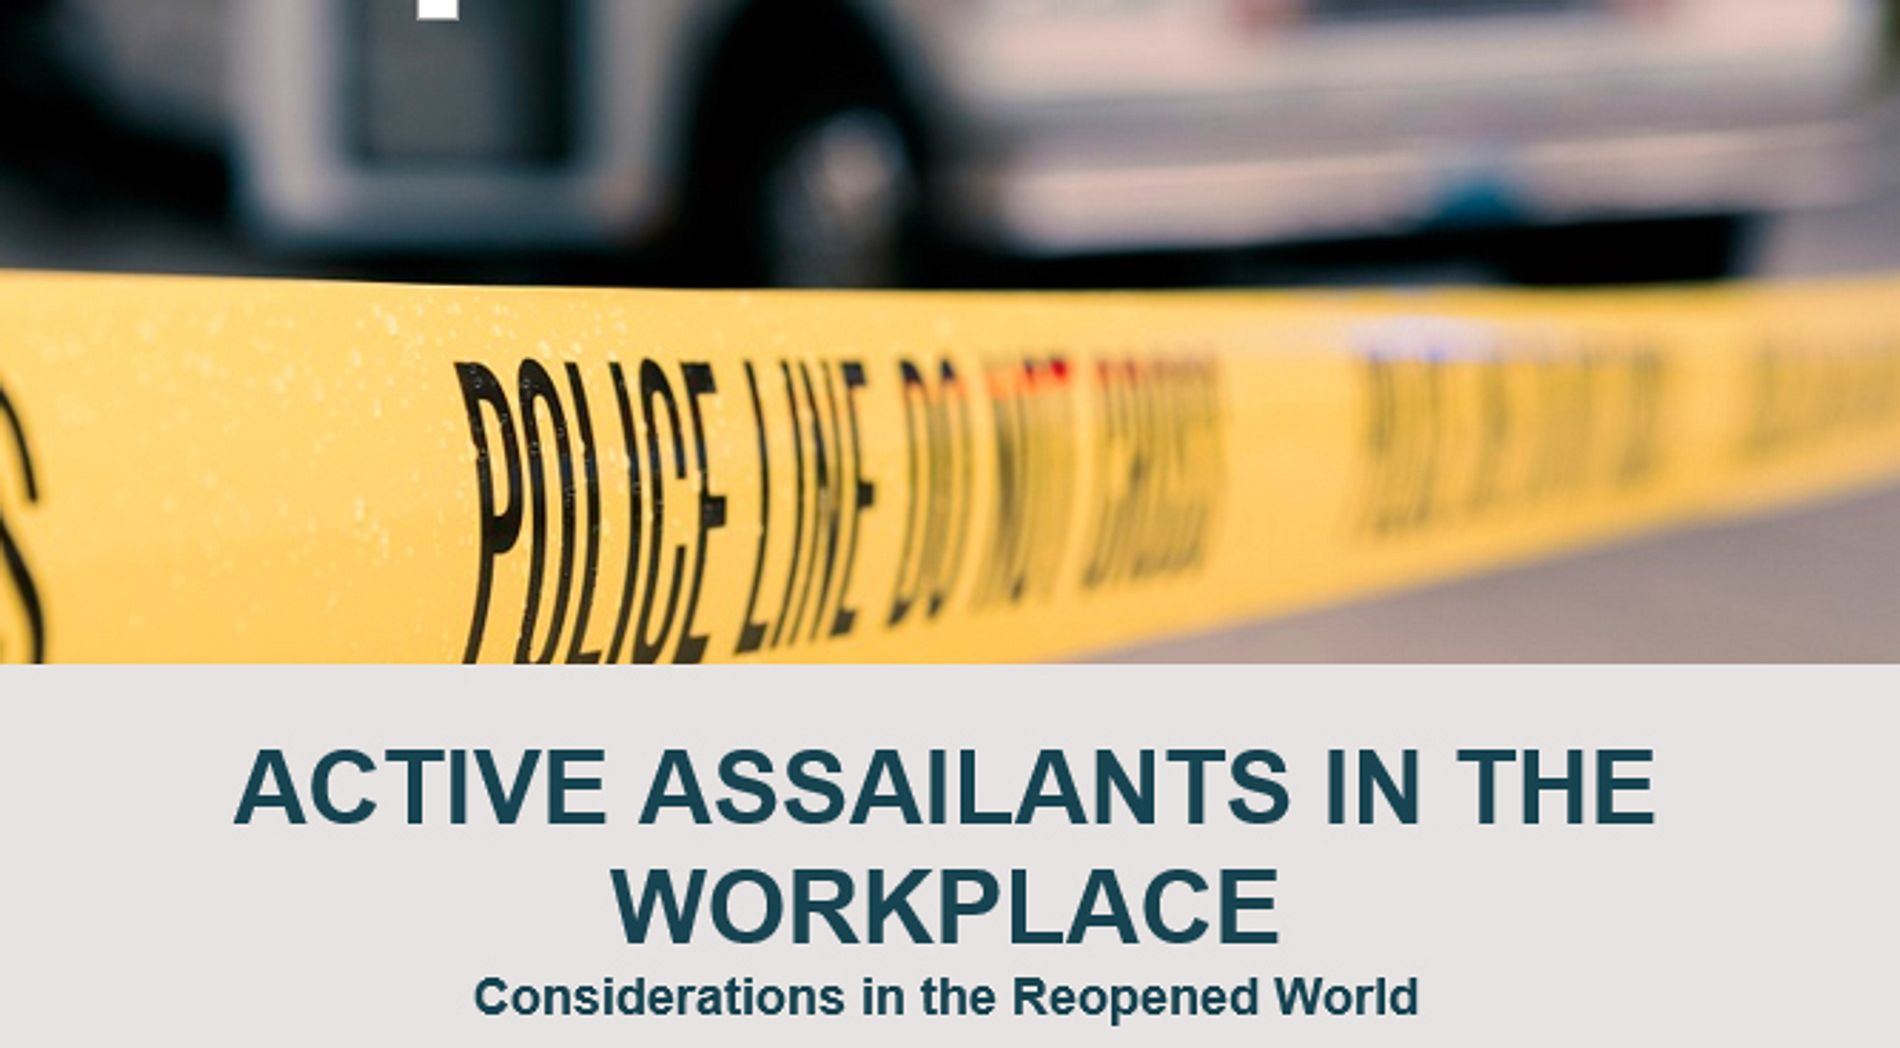 Workplace Violence and Active Assailant Risks